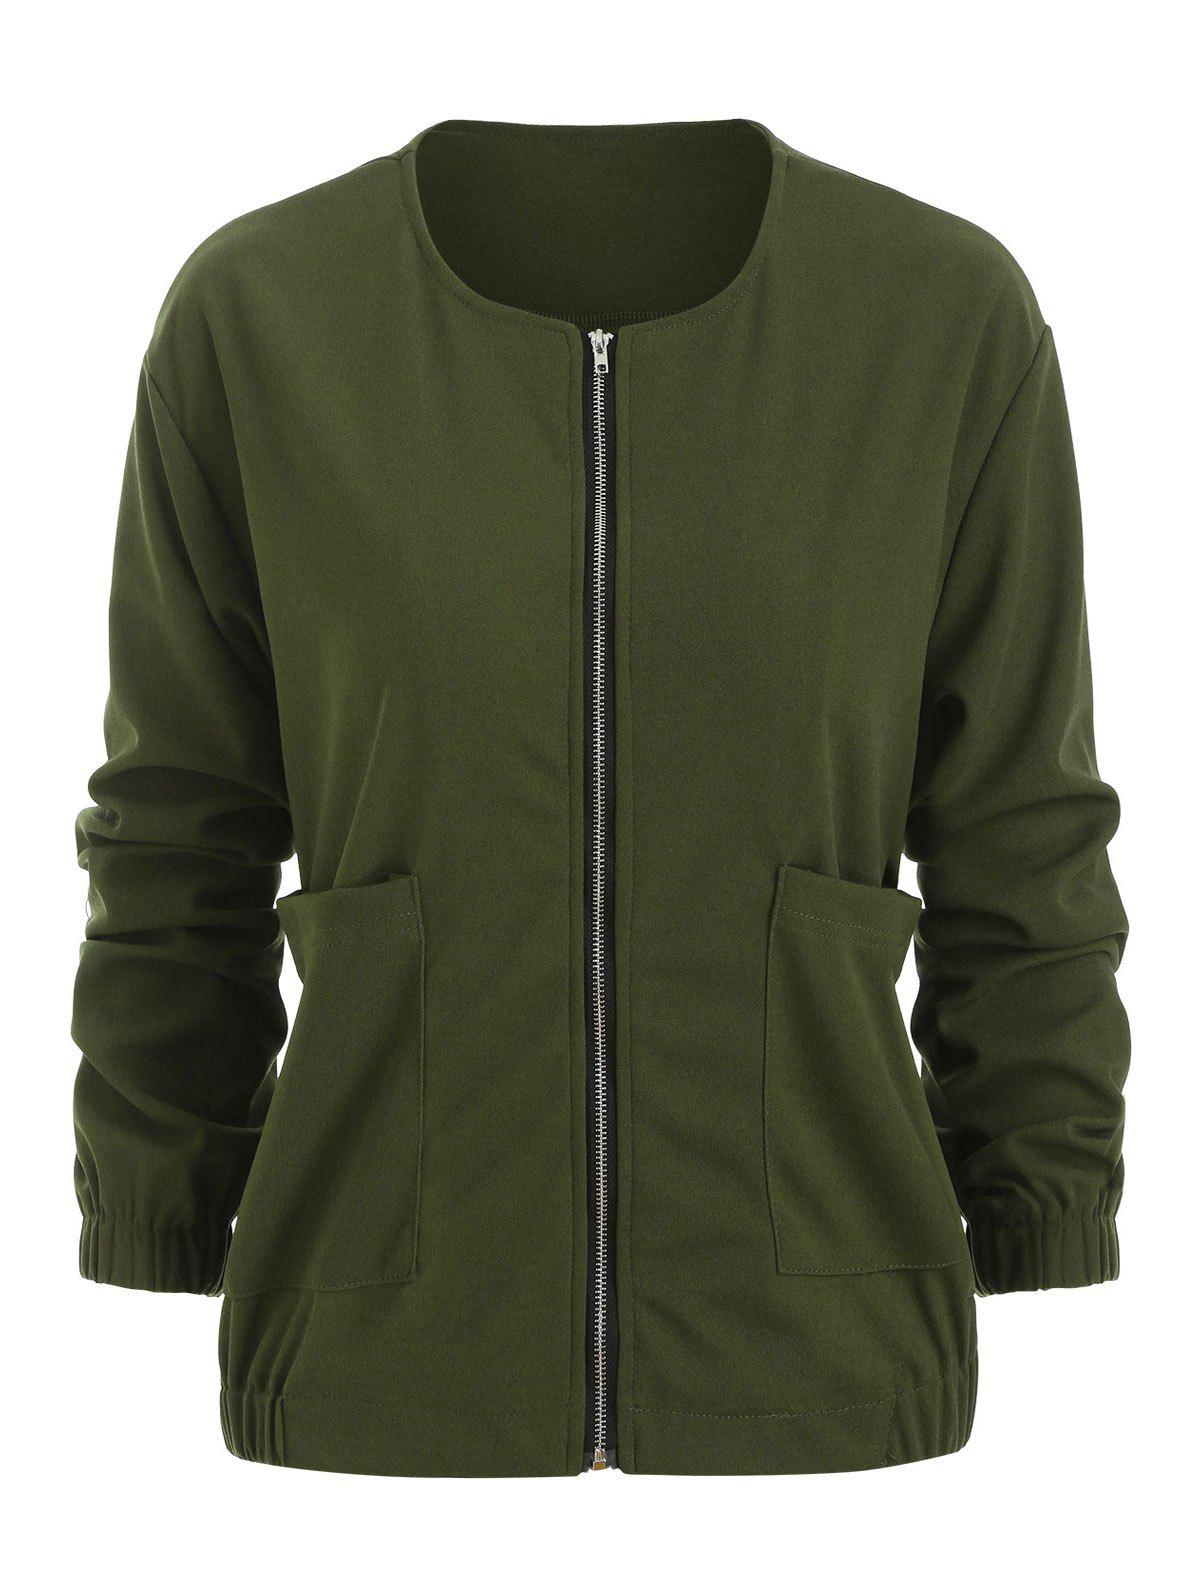 Plus Size Front Pockets Jacket - ARMY GREEN 3X